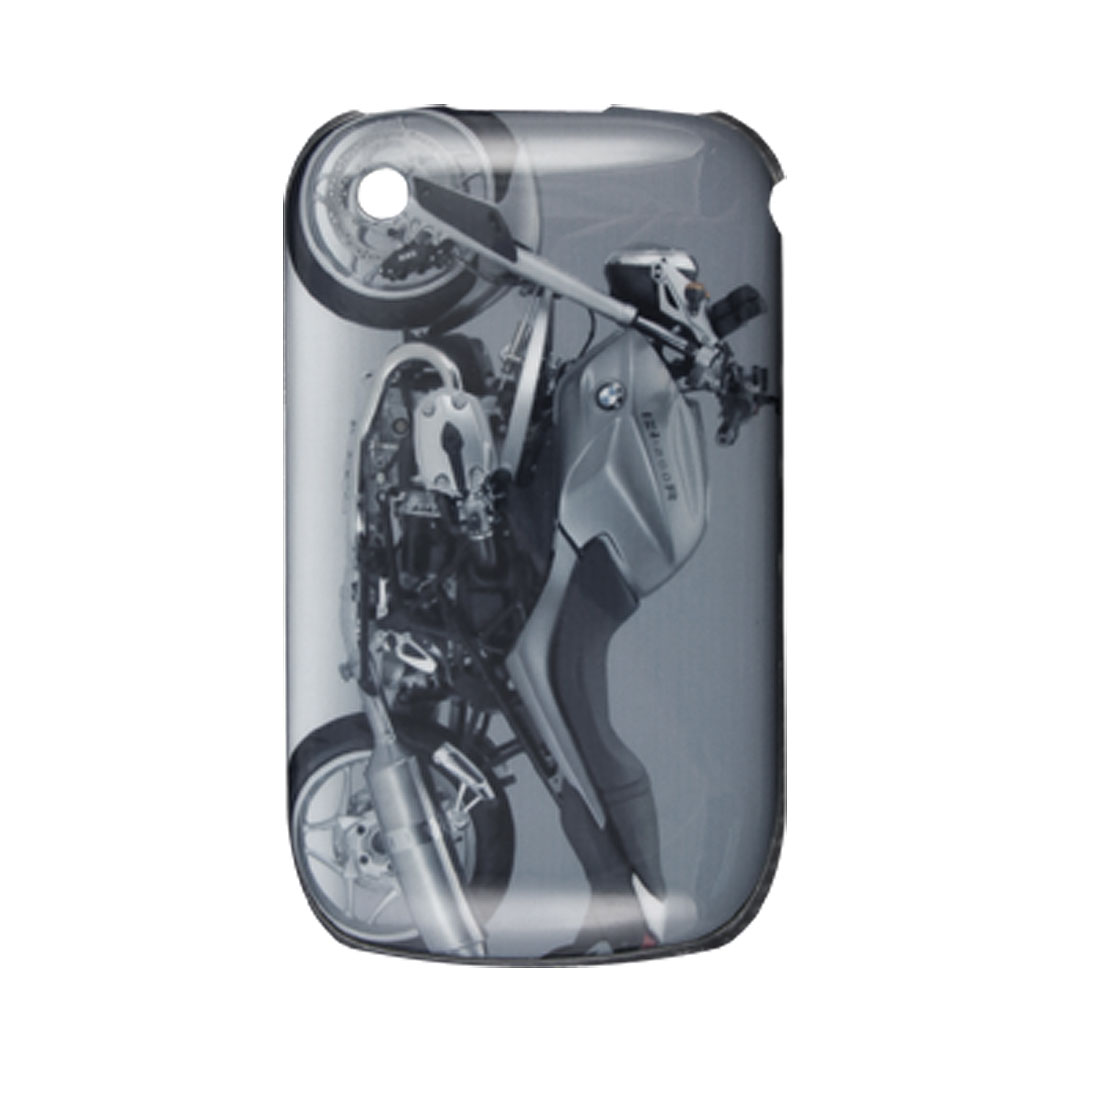 Motorbike Print Plastic Back Case Cover for Blackberry Curve 8520